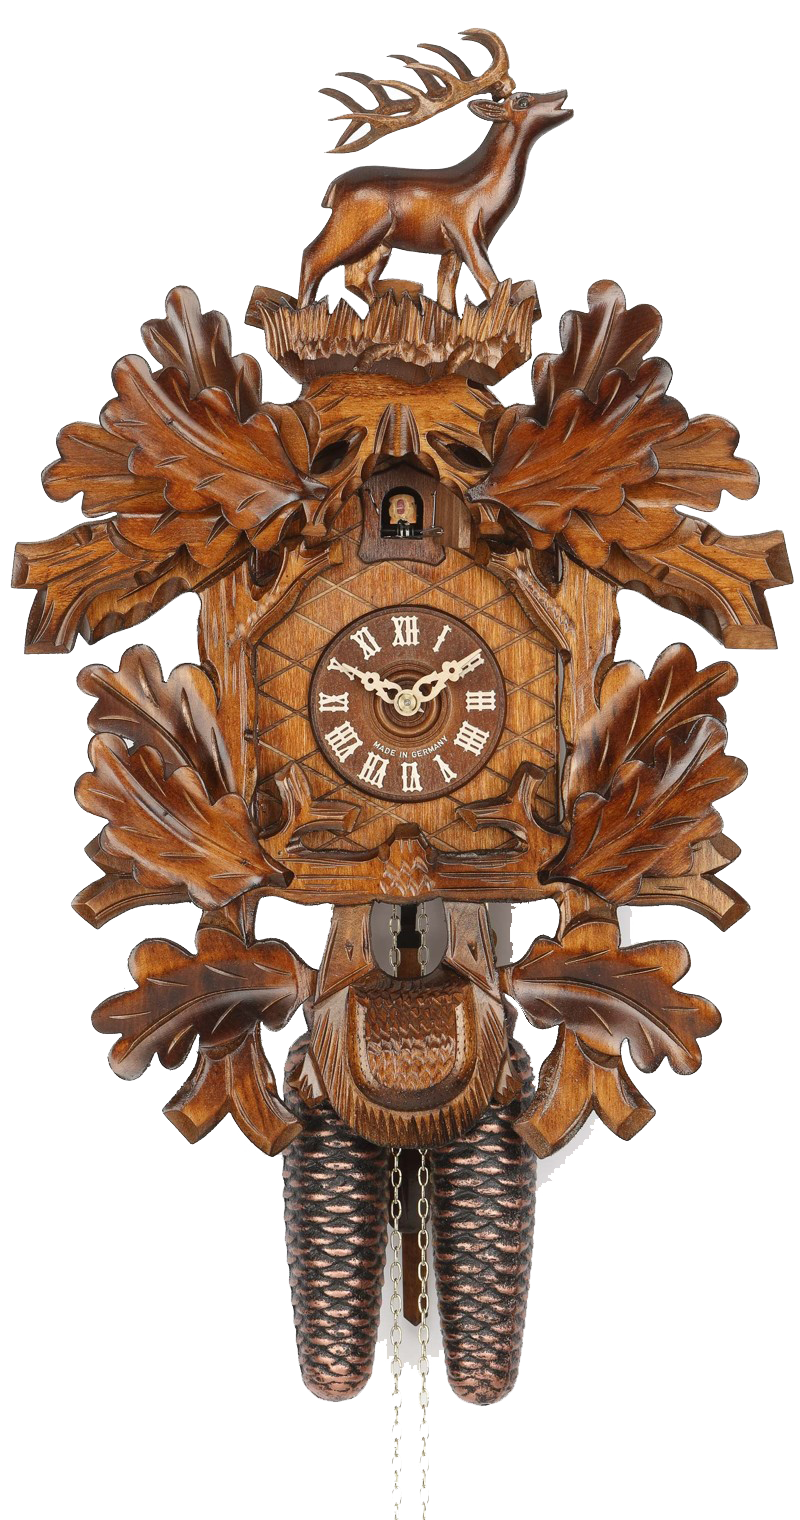 Cuckoo Clock Hunting Clock with Standing Deer 8-Day Movement - Cuckoo Clock Meister